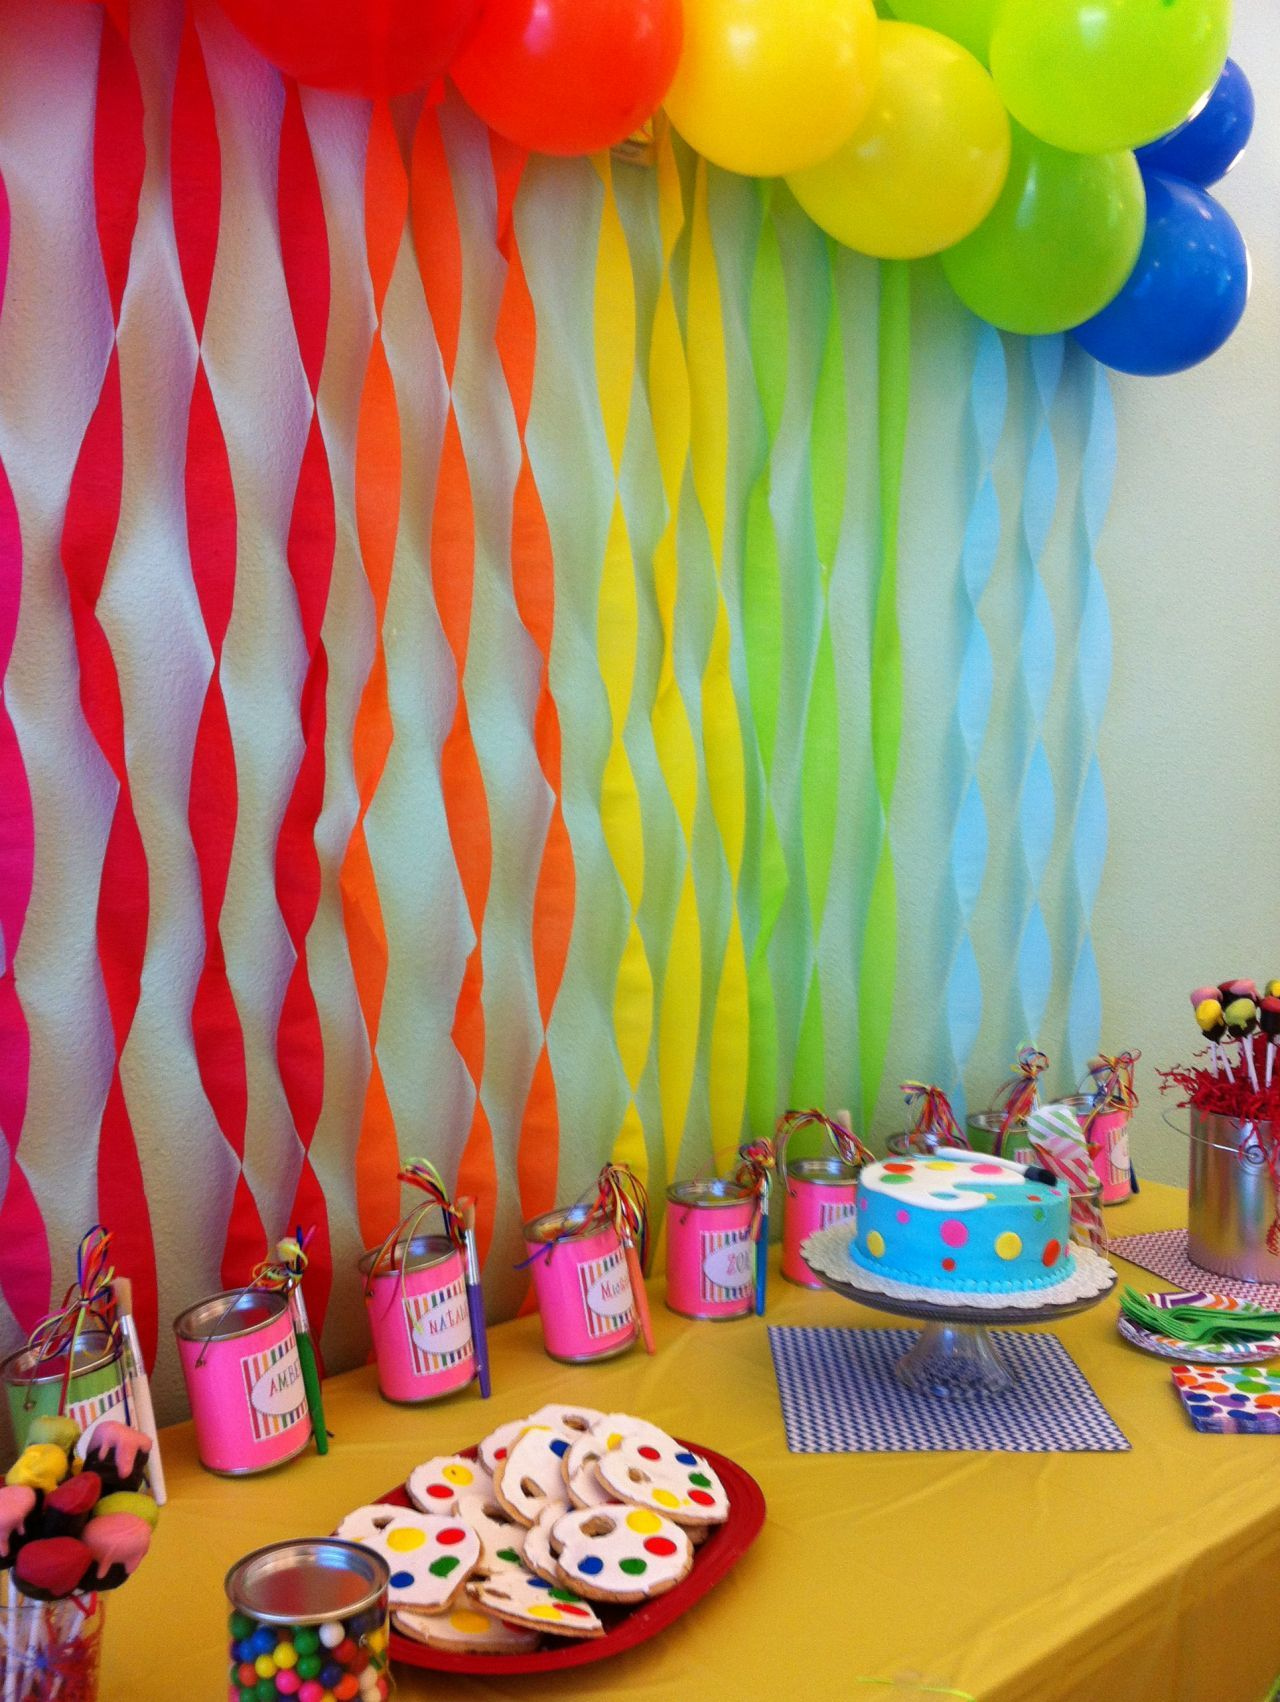 Get these 12 images of 4 year old boy birthday party ideas